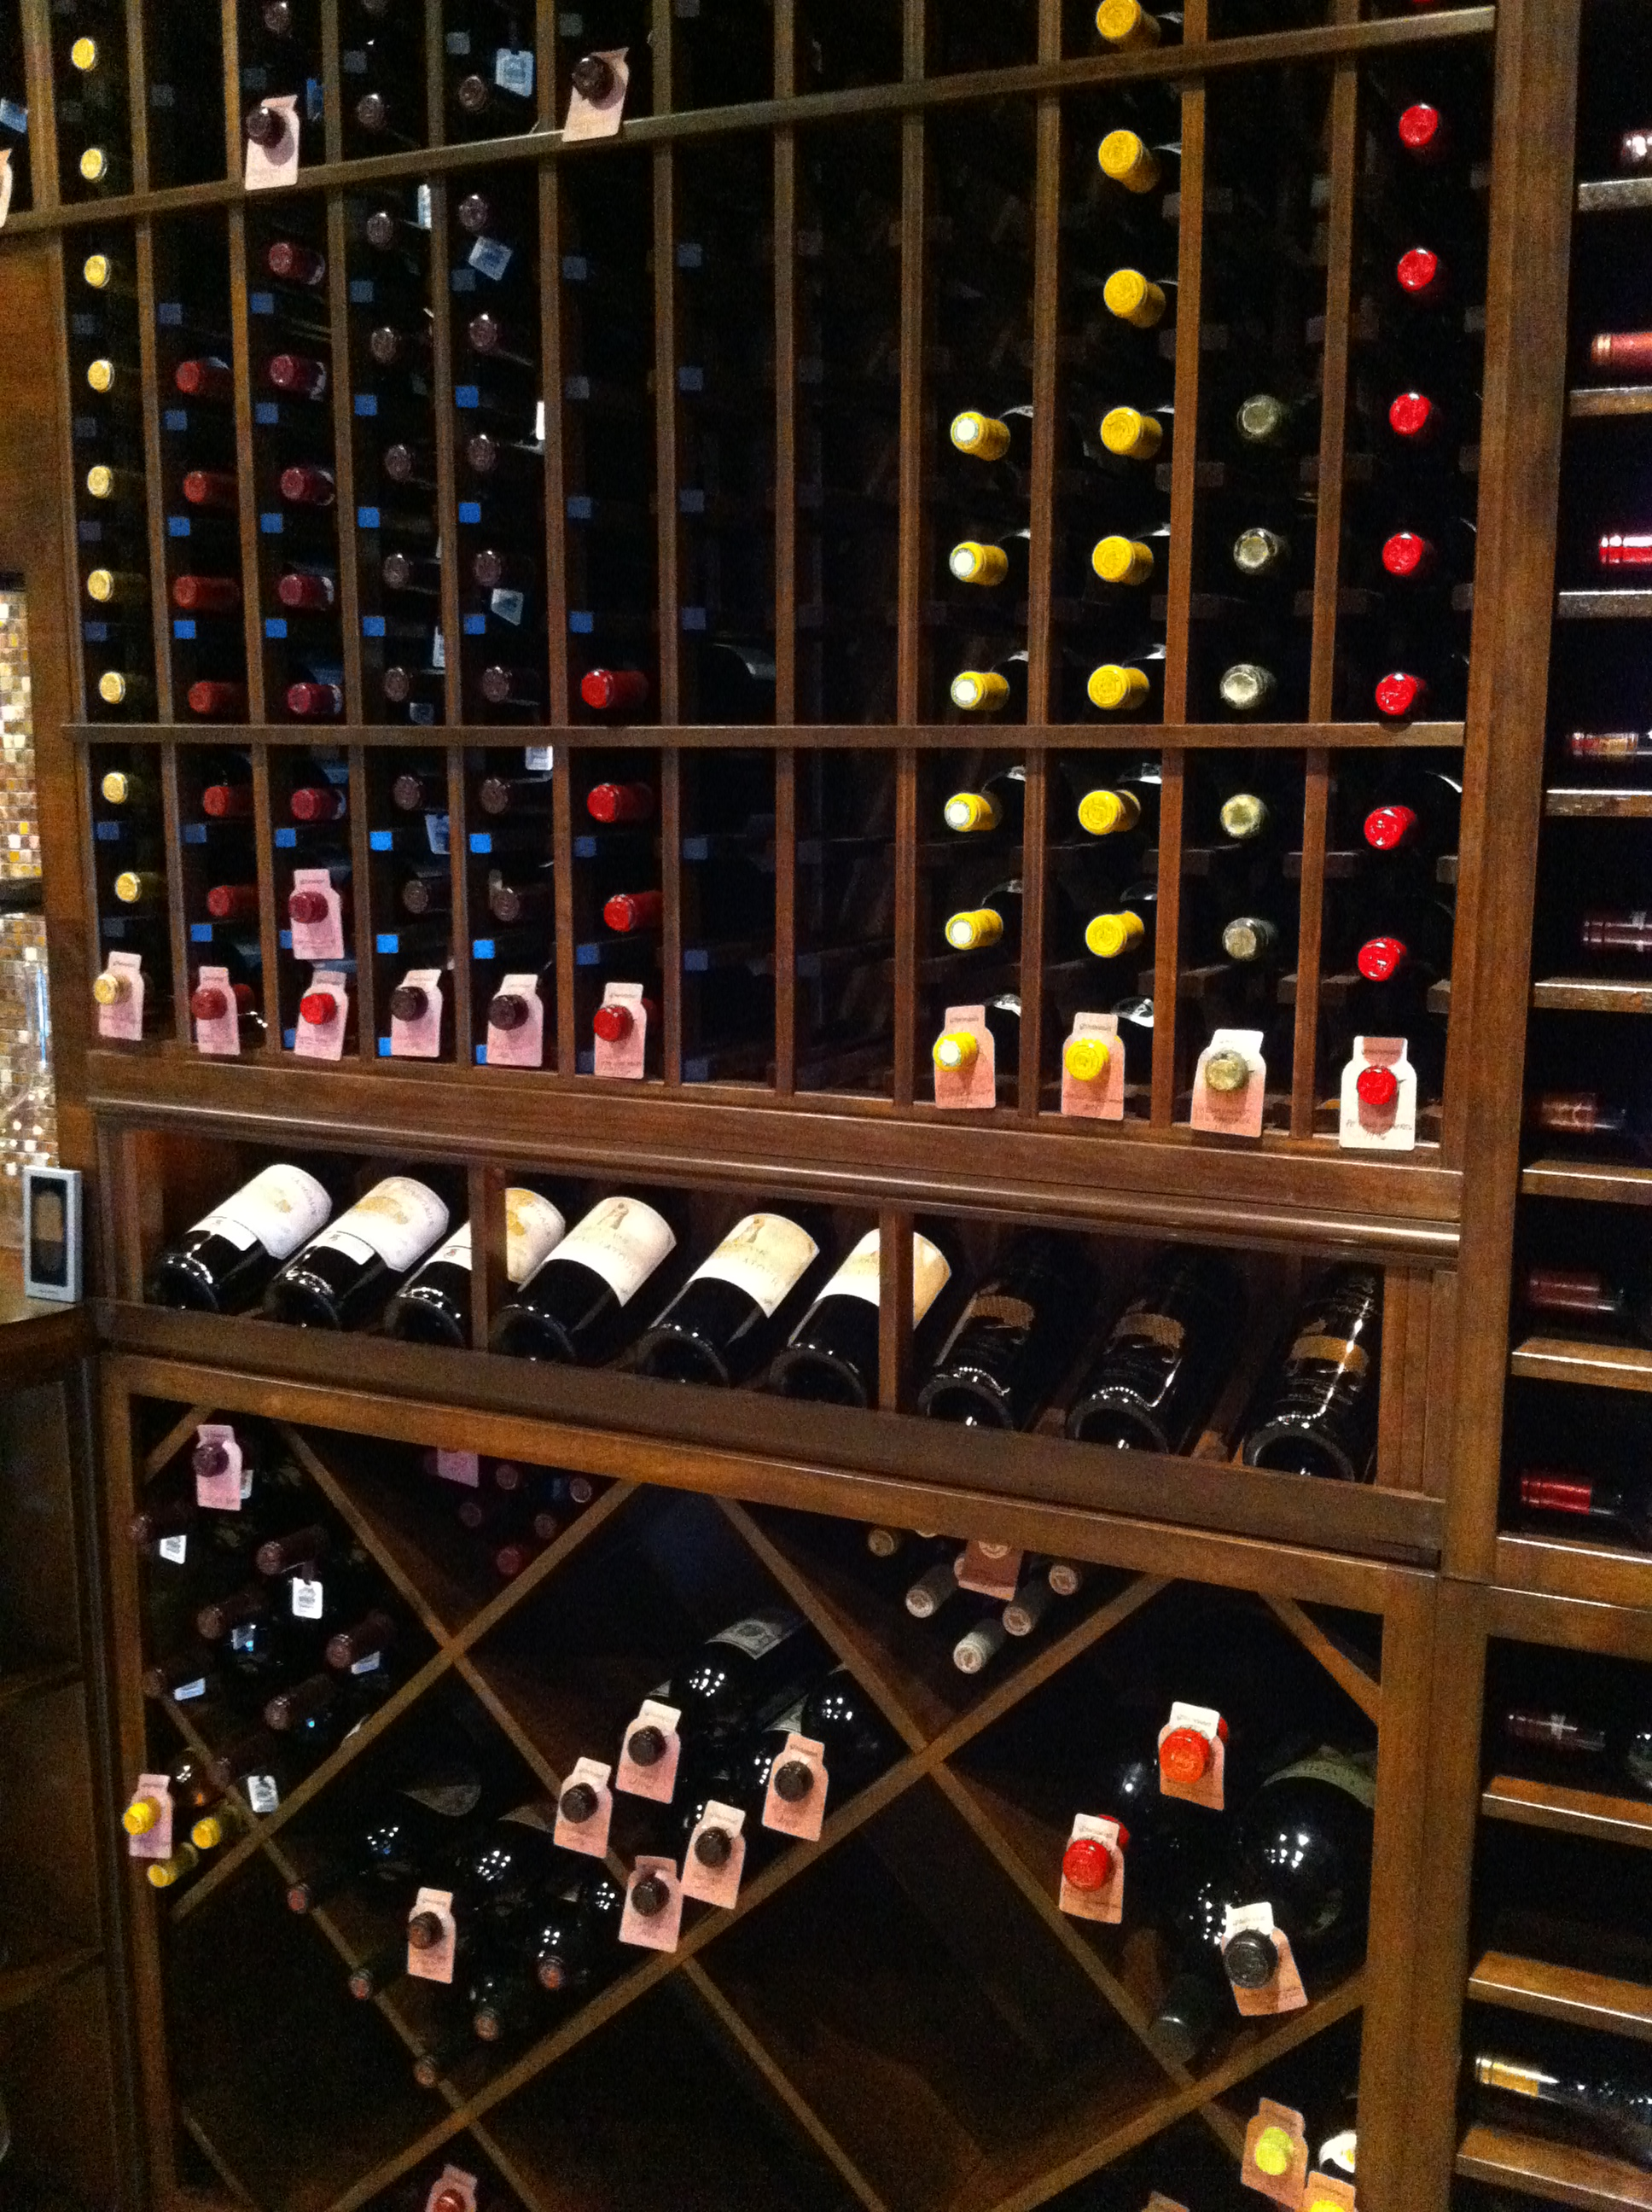 custom wine cellars south florida  u2013 s m  private residential collection boynton beach   wine